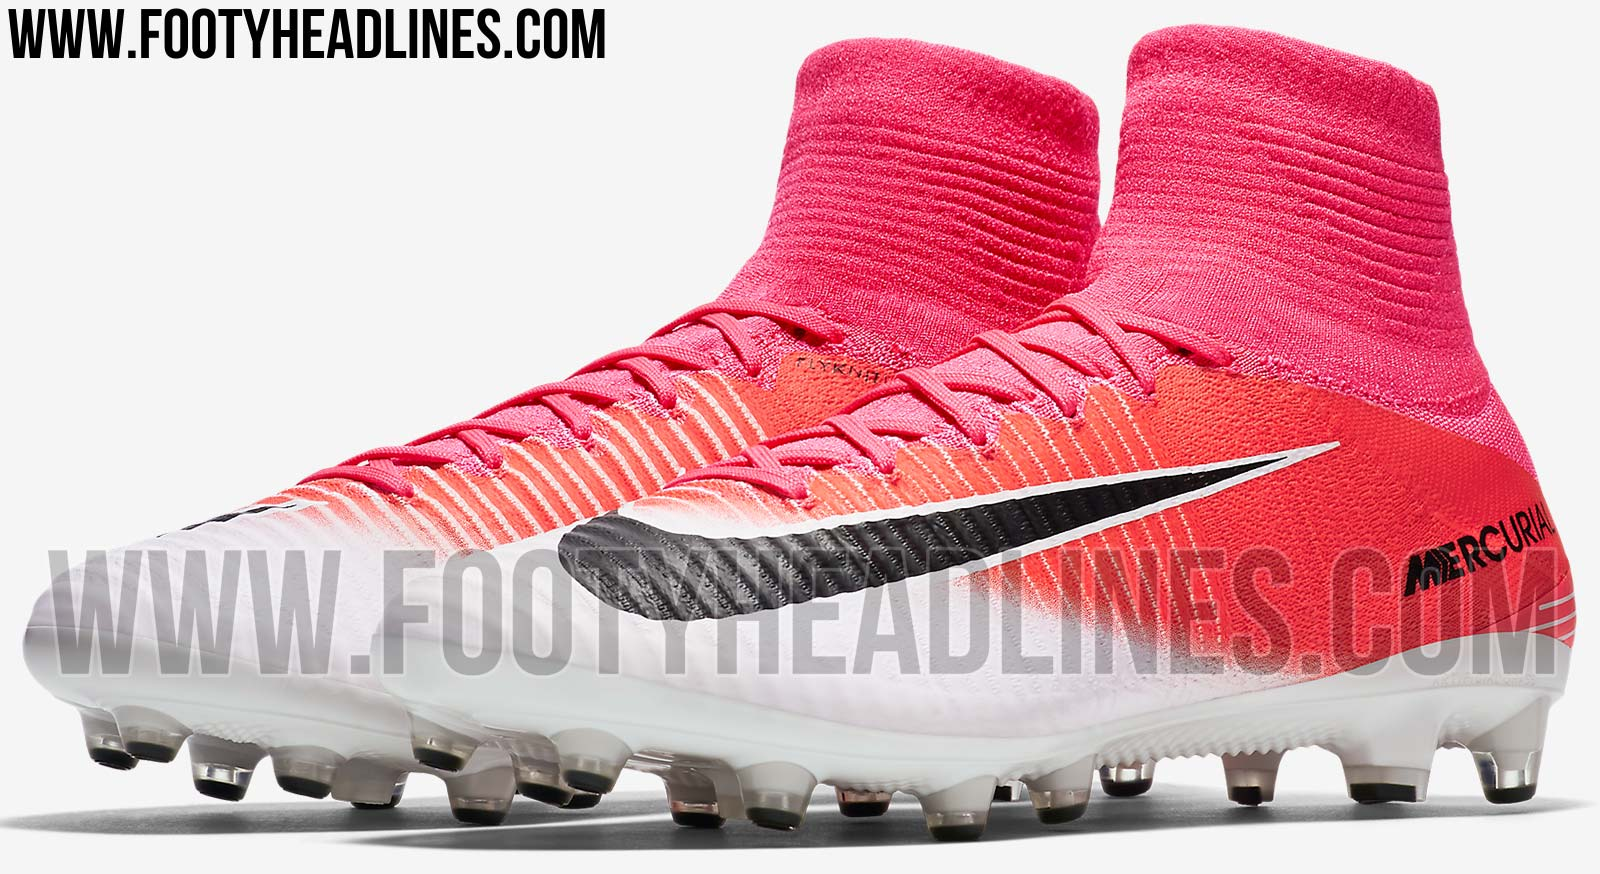 Mercurial Soccer Cleats Shoes White And Pink